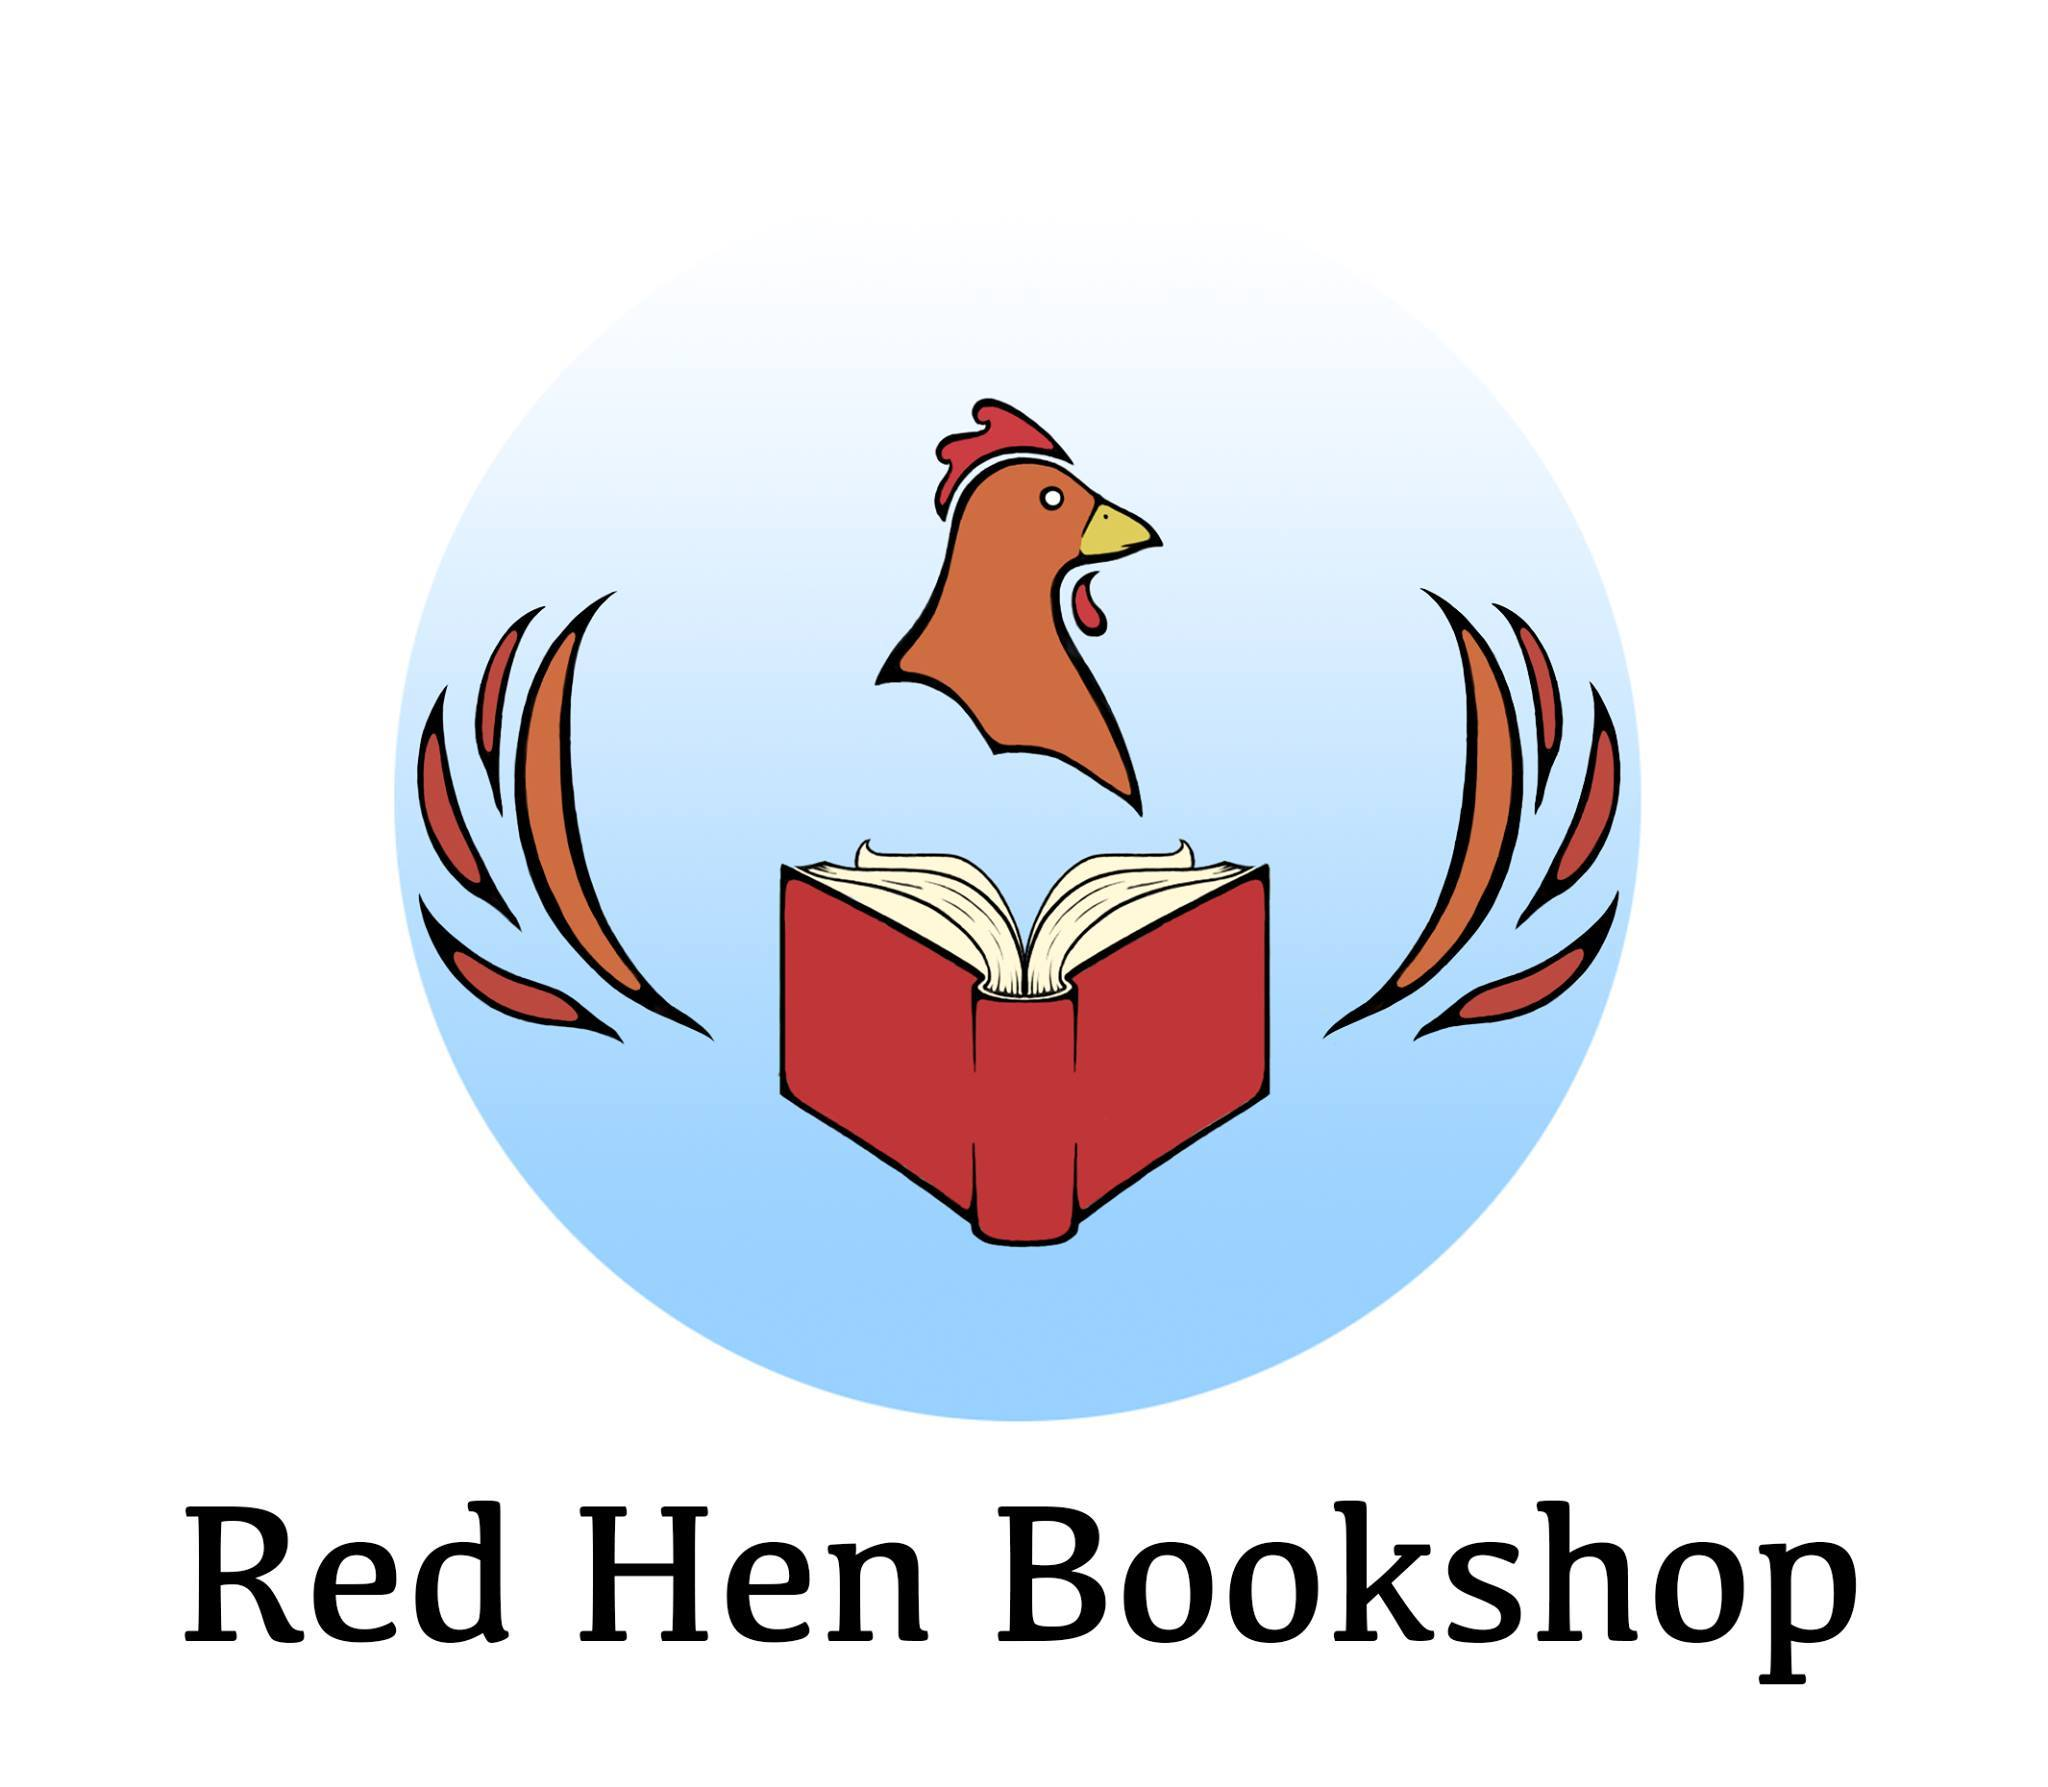 The Red Hen Bookshop